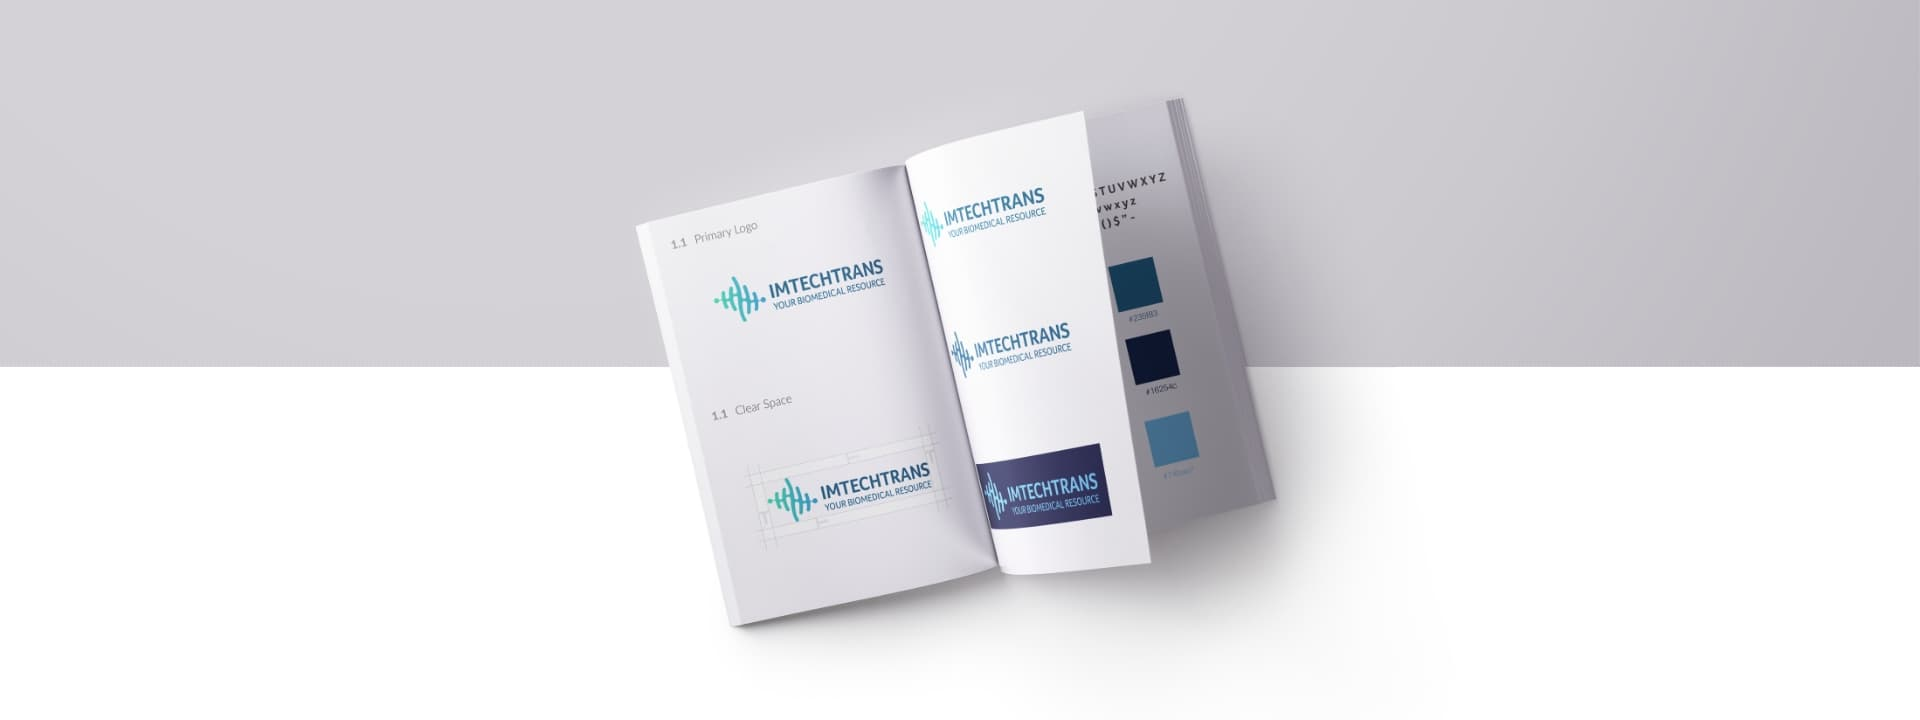 ImTechTrans Brand Book with logo color variations